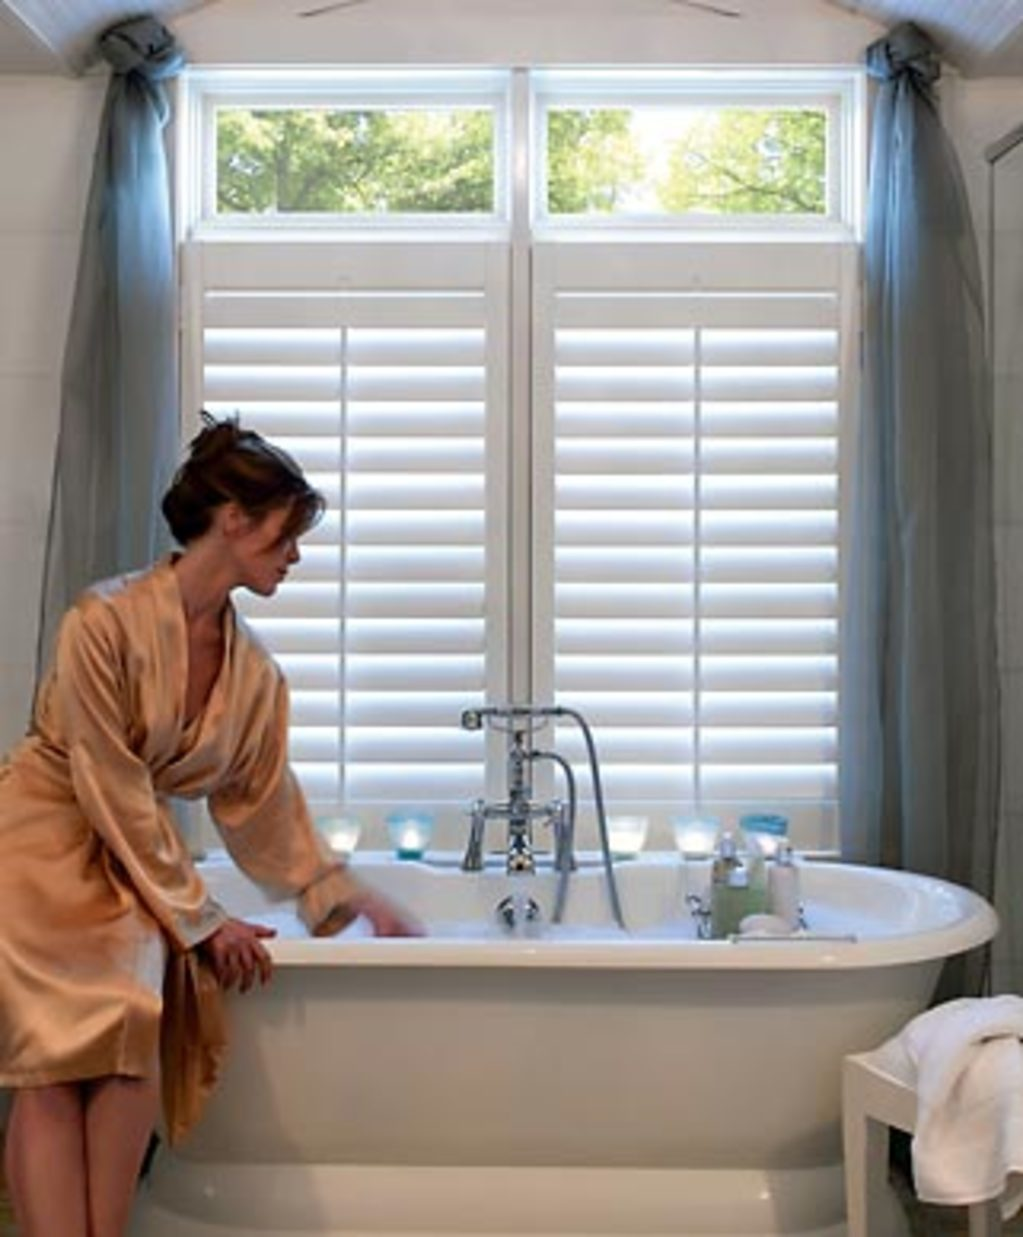 Payless Verticals & Blinds - Shutters in Bathroom